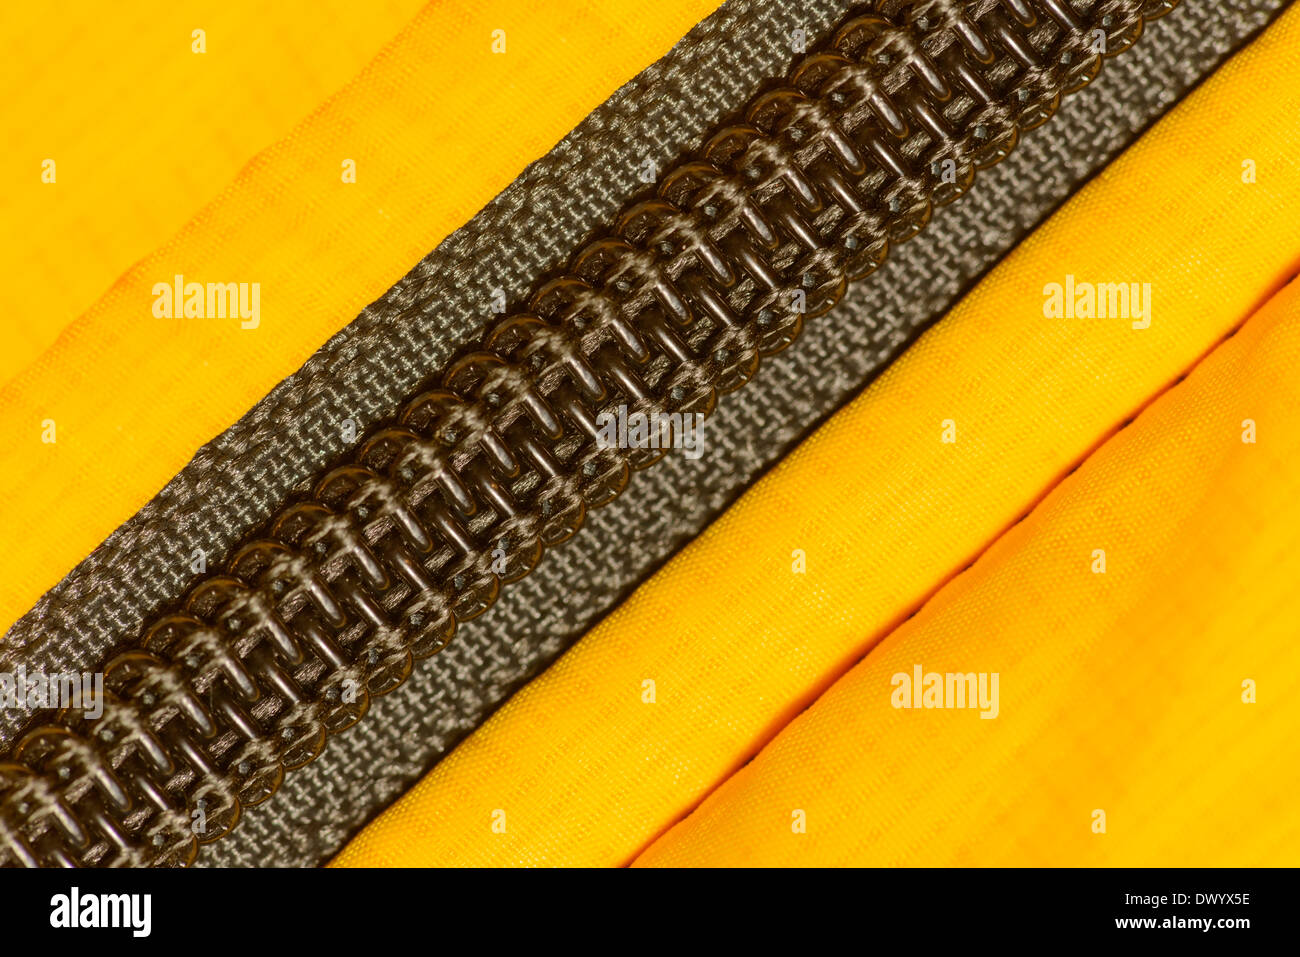 A coil zipper made of spiral plastic elements sewn into a yellow waterproof coat. - Stock Image